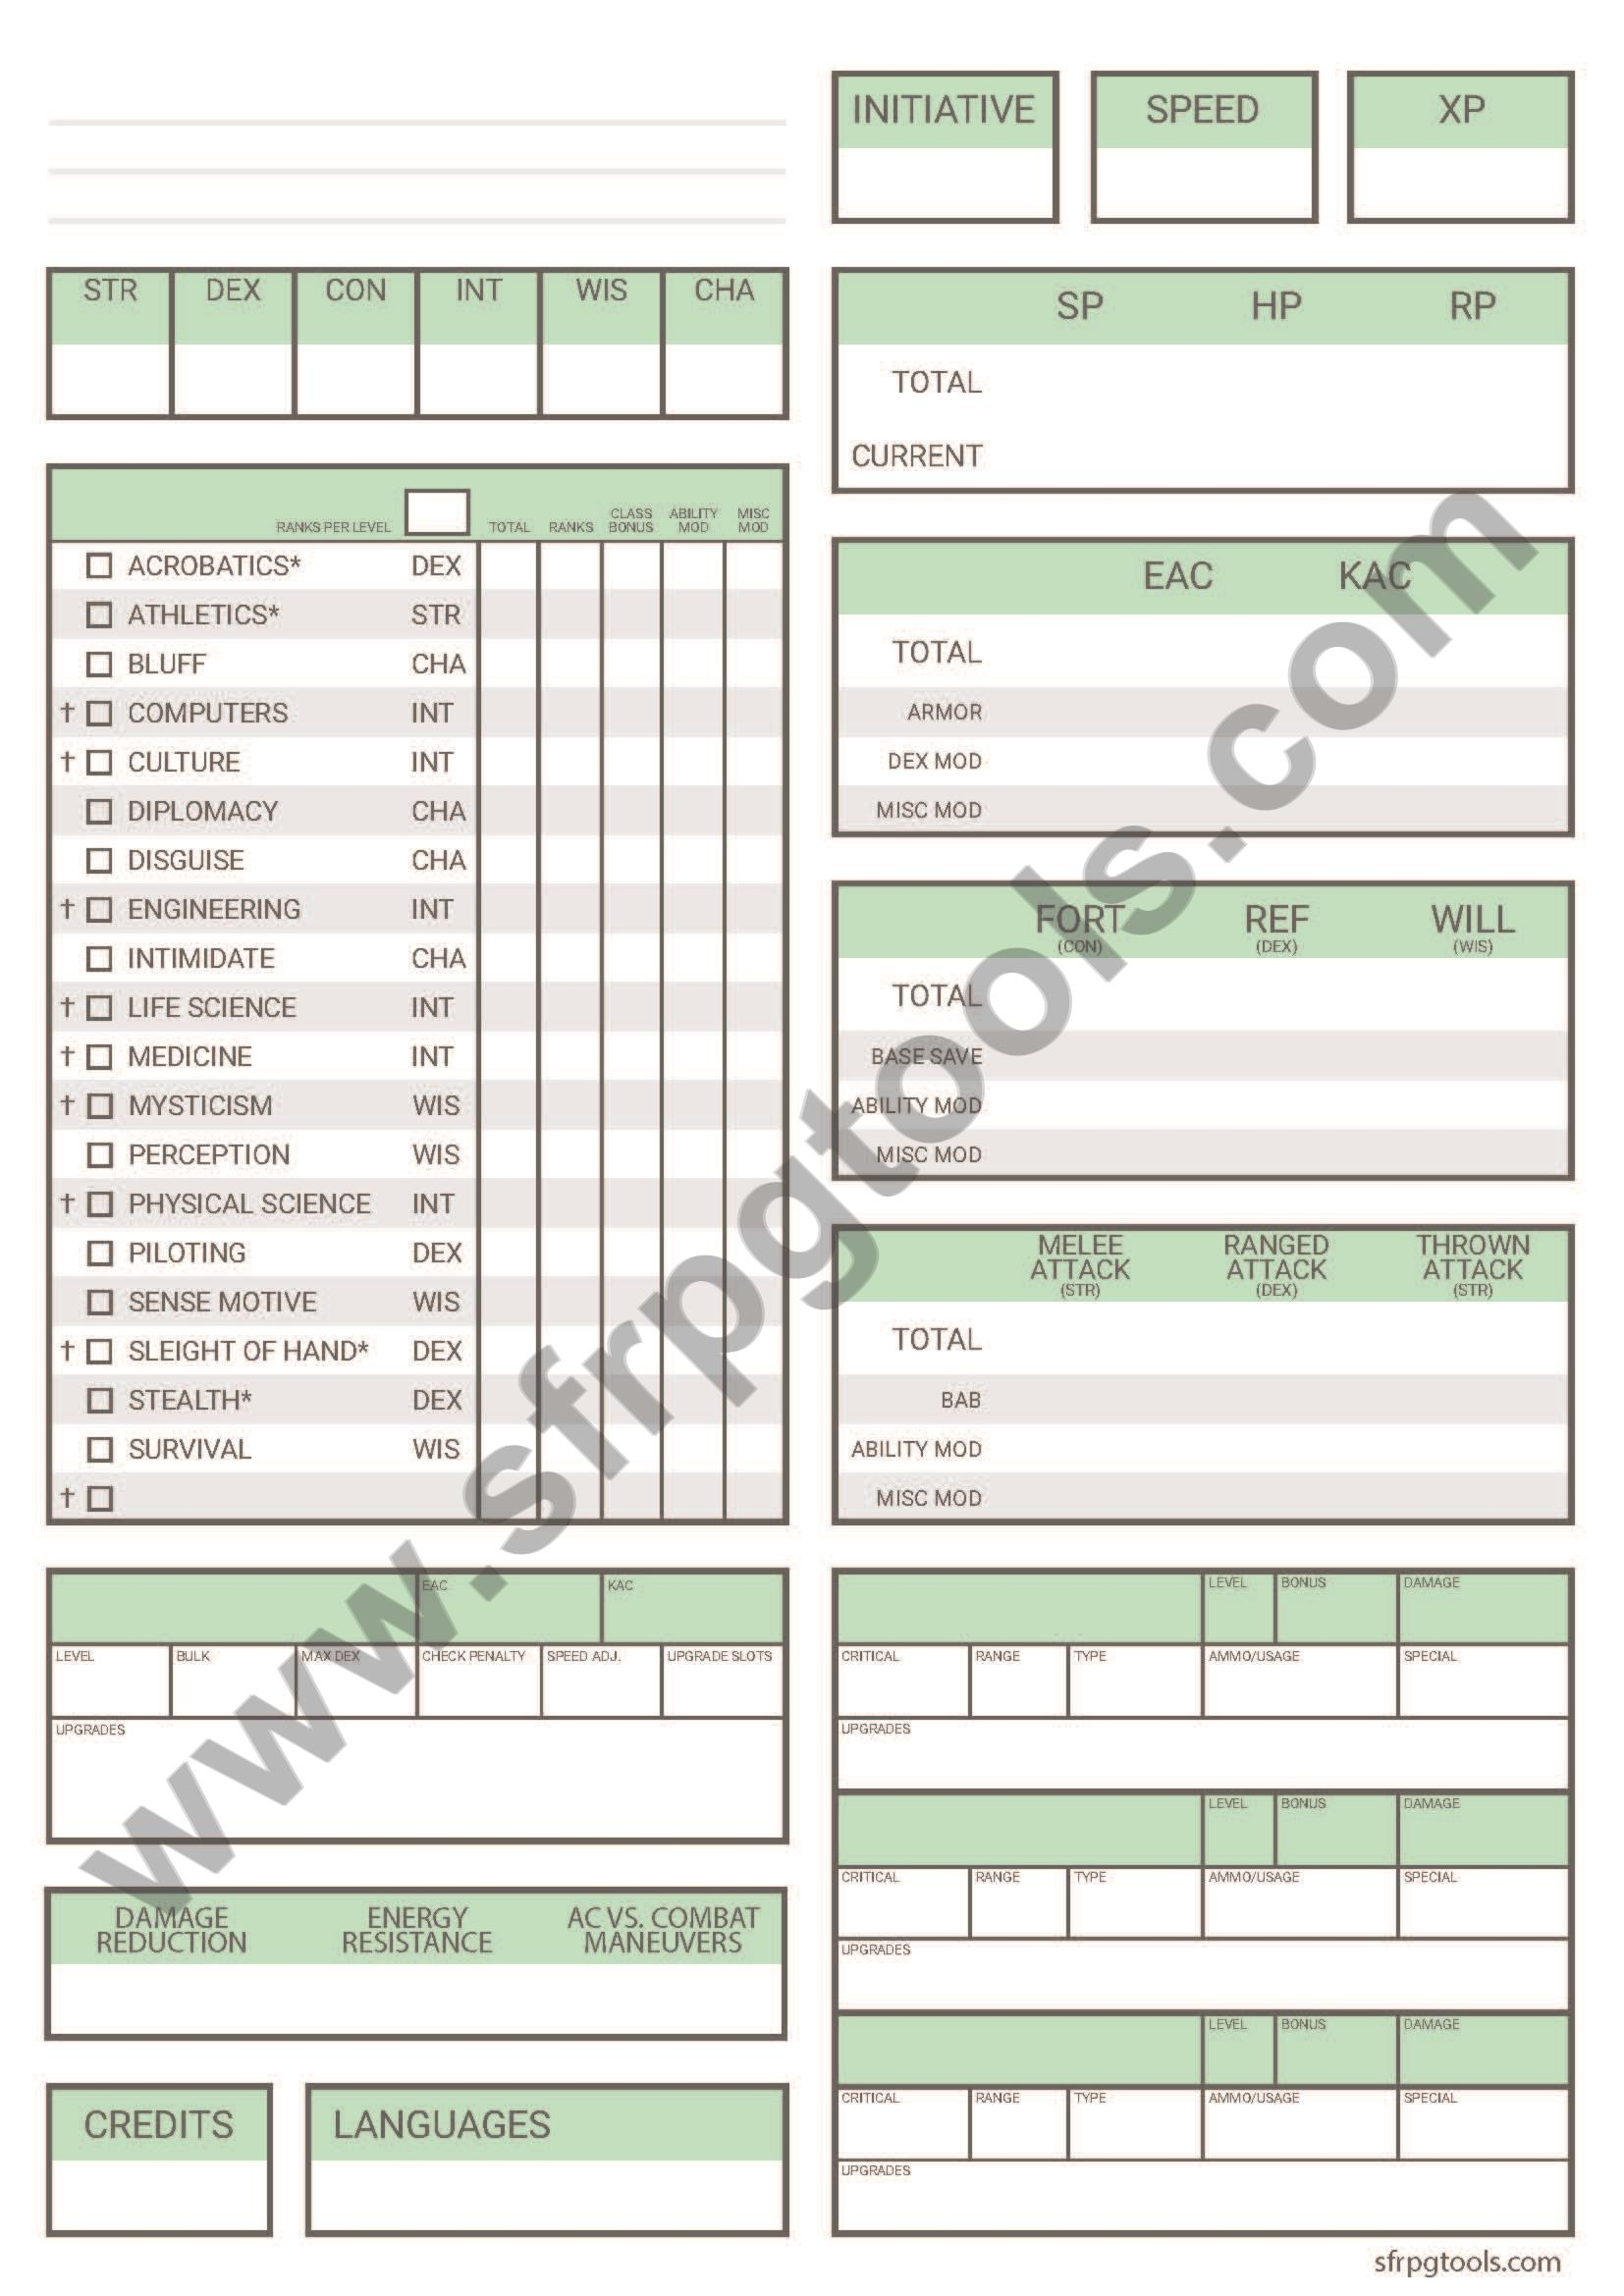 graphic about Starfinder Character Sheet Printable named Different Starfinder Persona Sheet